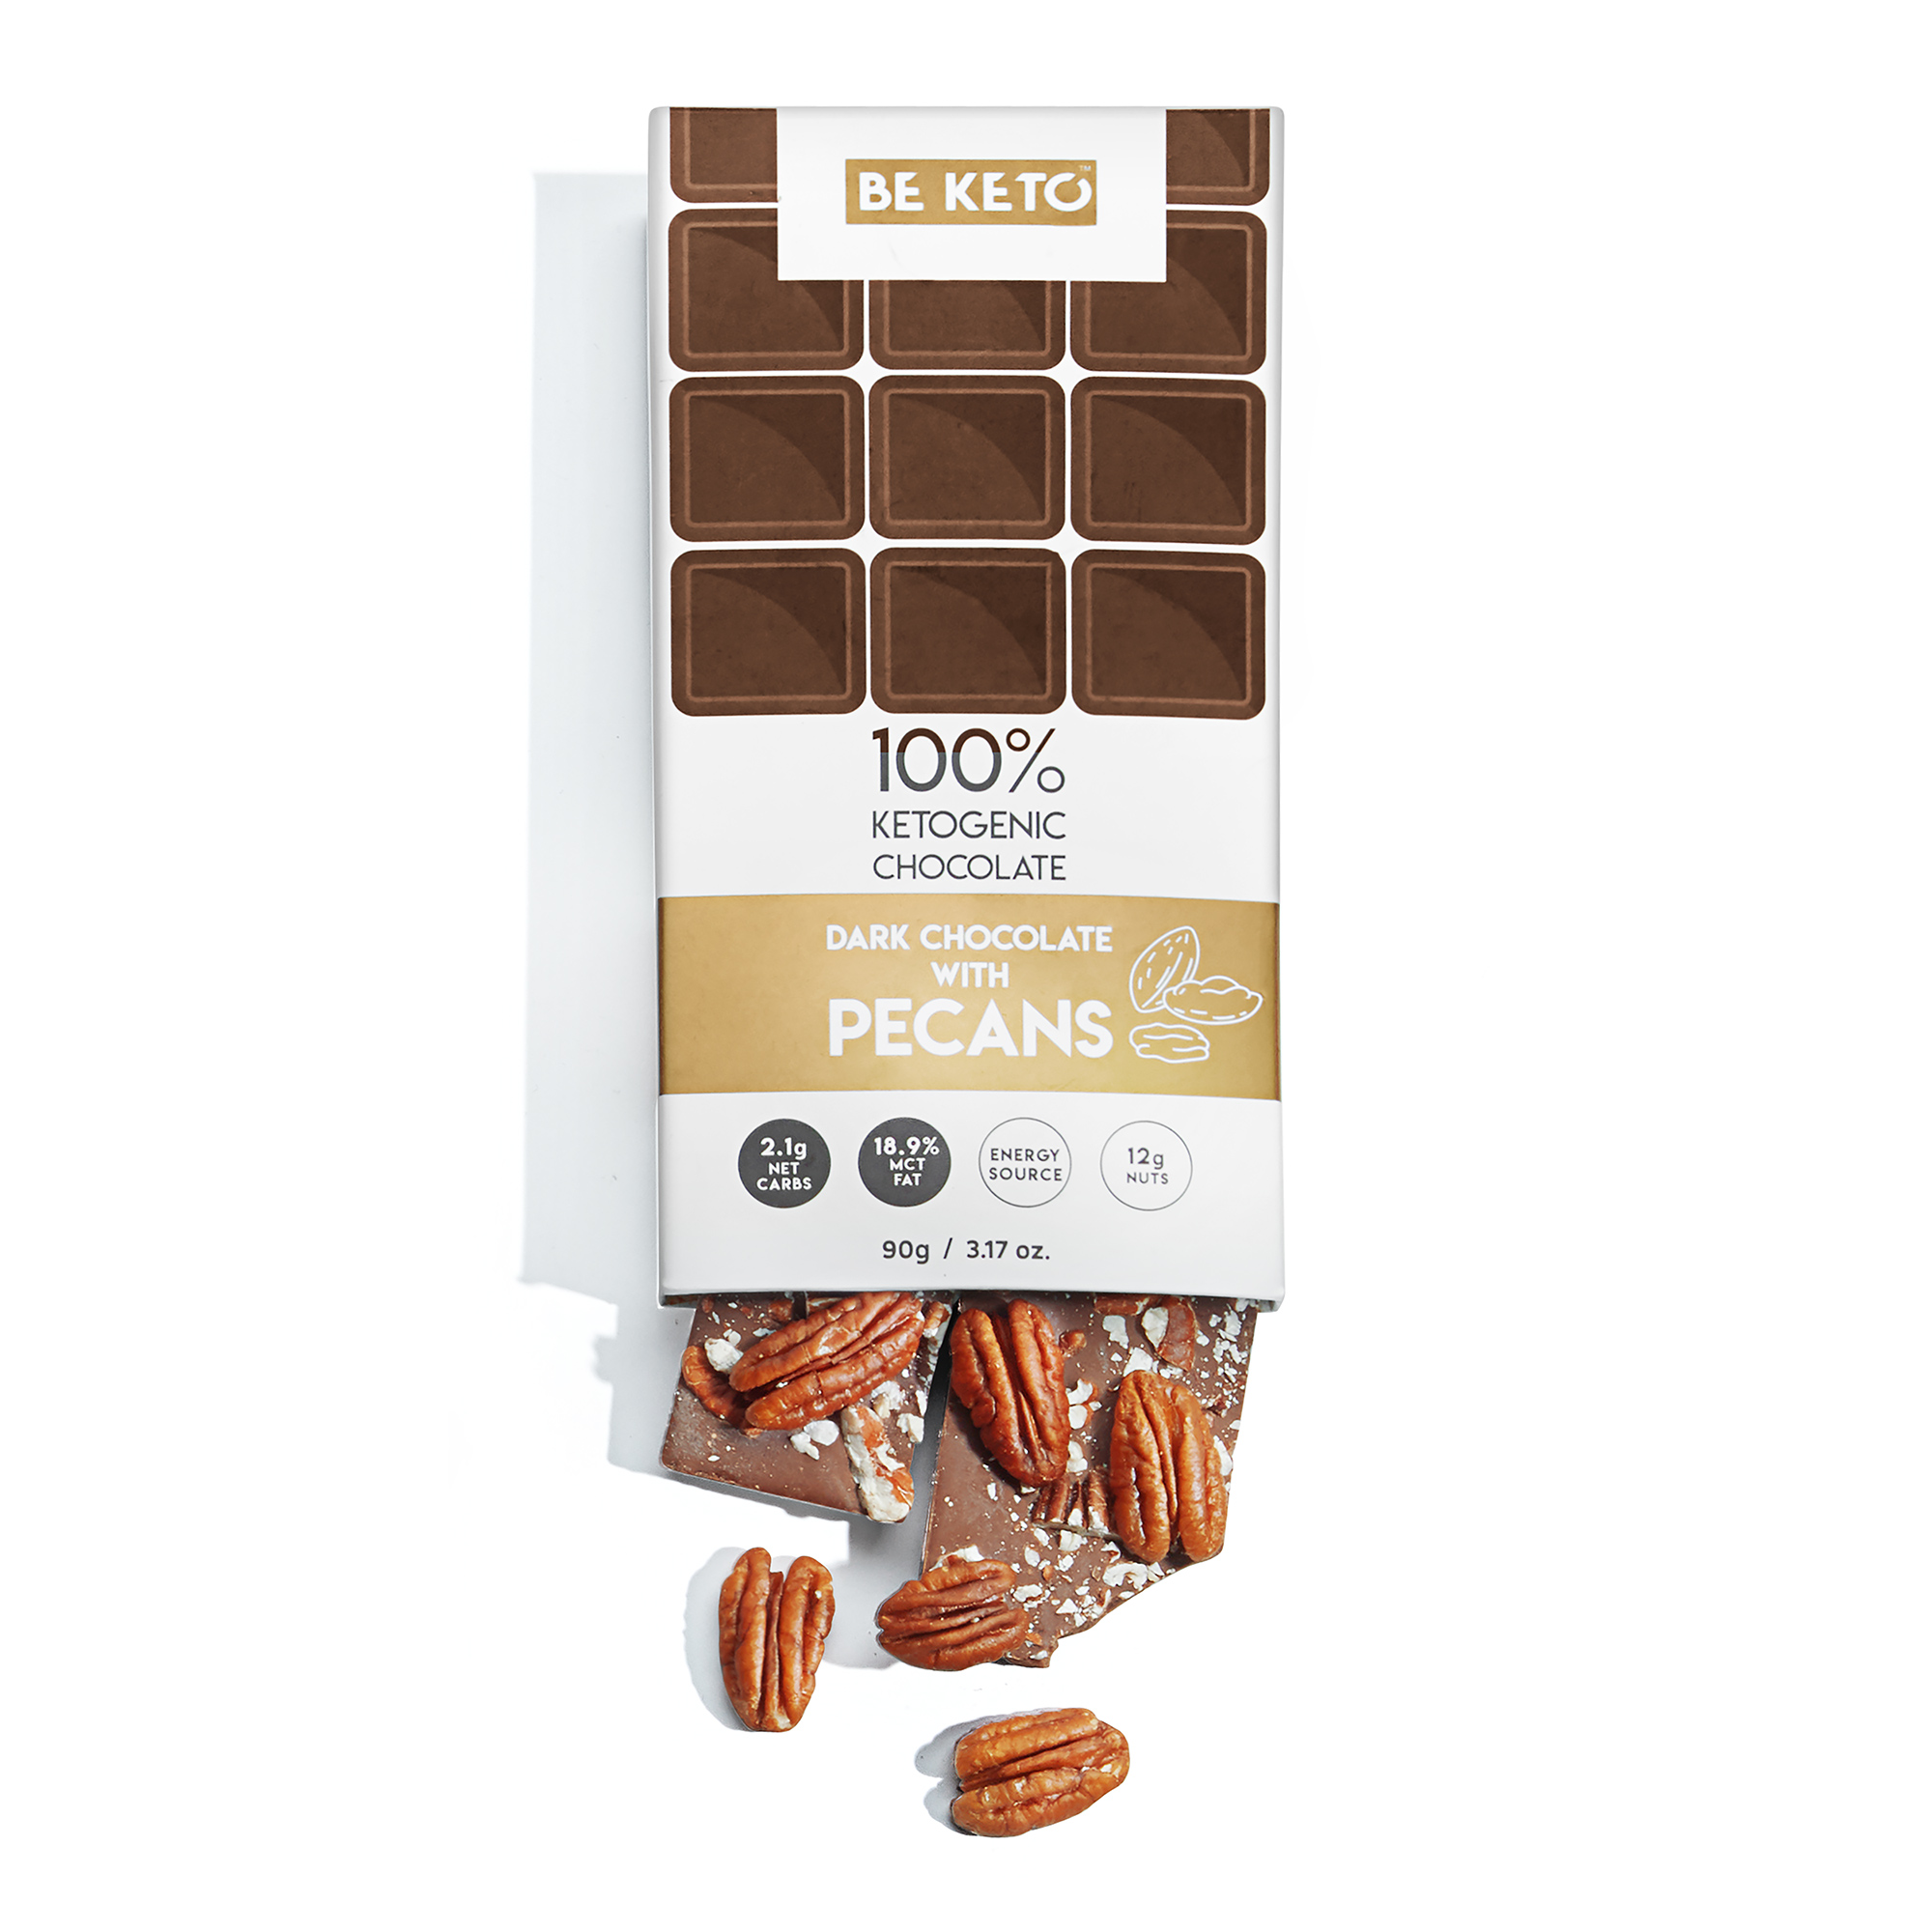 Keto Chocolate + MCT Oil - Pecans